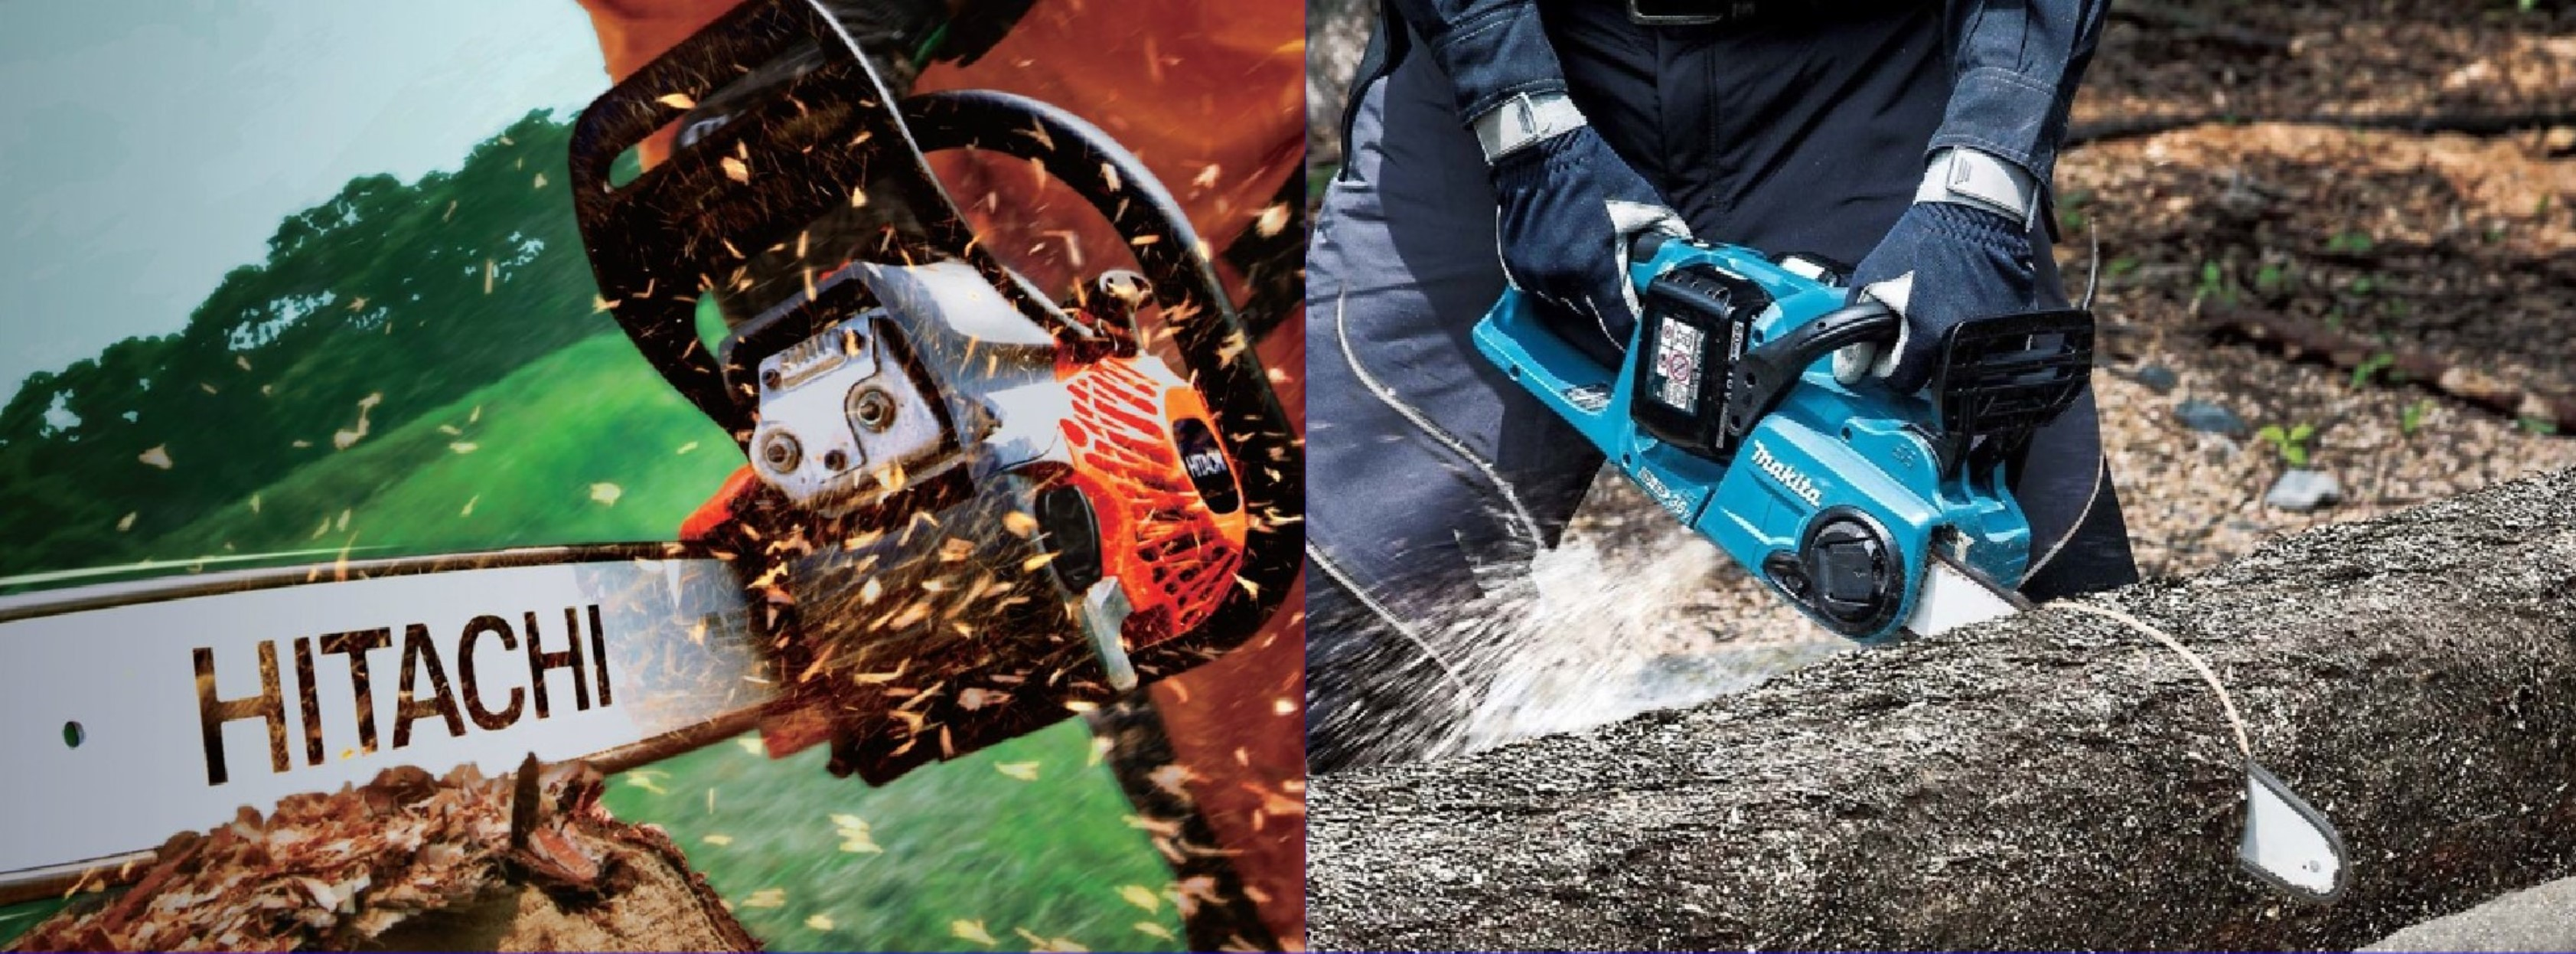 Electric and Petrol Chain Saw